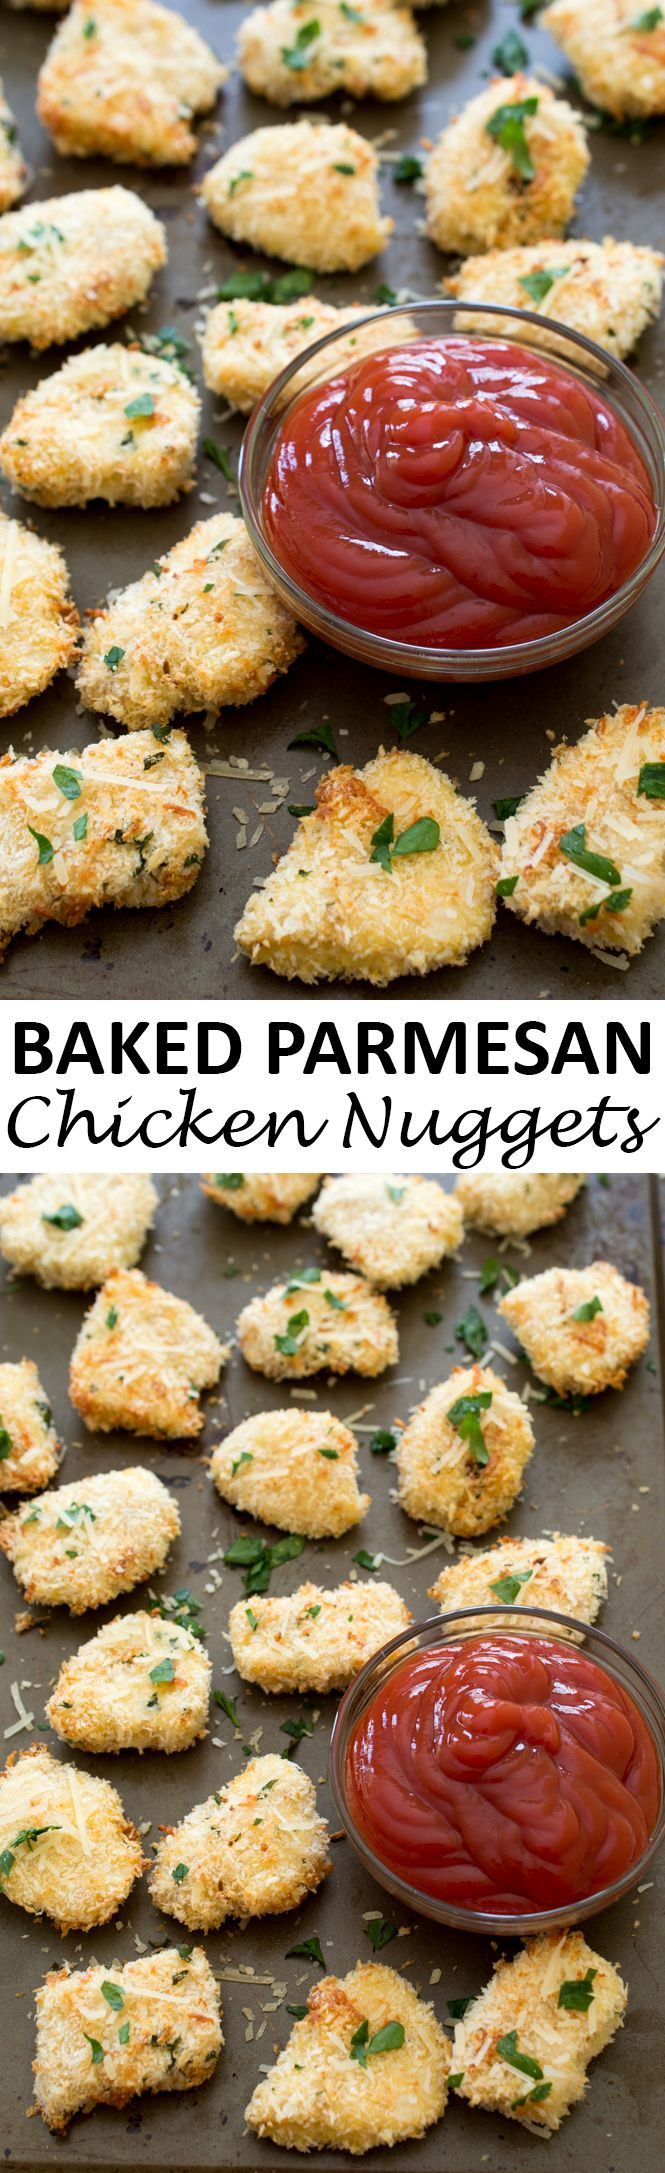 Super Crispy Baked Parmesan Garlic Chicken Nuggets. Breaded in panko breadcrumbs and Parmesan cheese and baked until golden brown and crispy. Wonderful as an appetizer or for dinner! | chefsavvy.com #recipe #chicken #nuggets